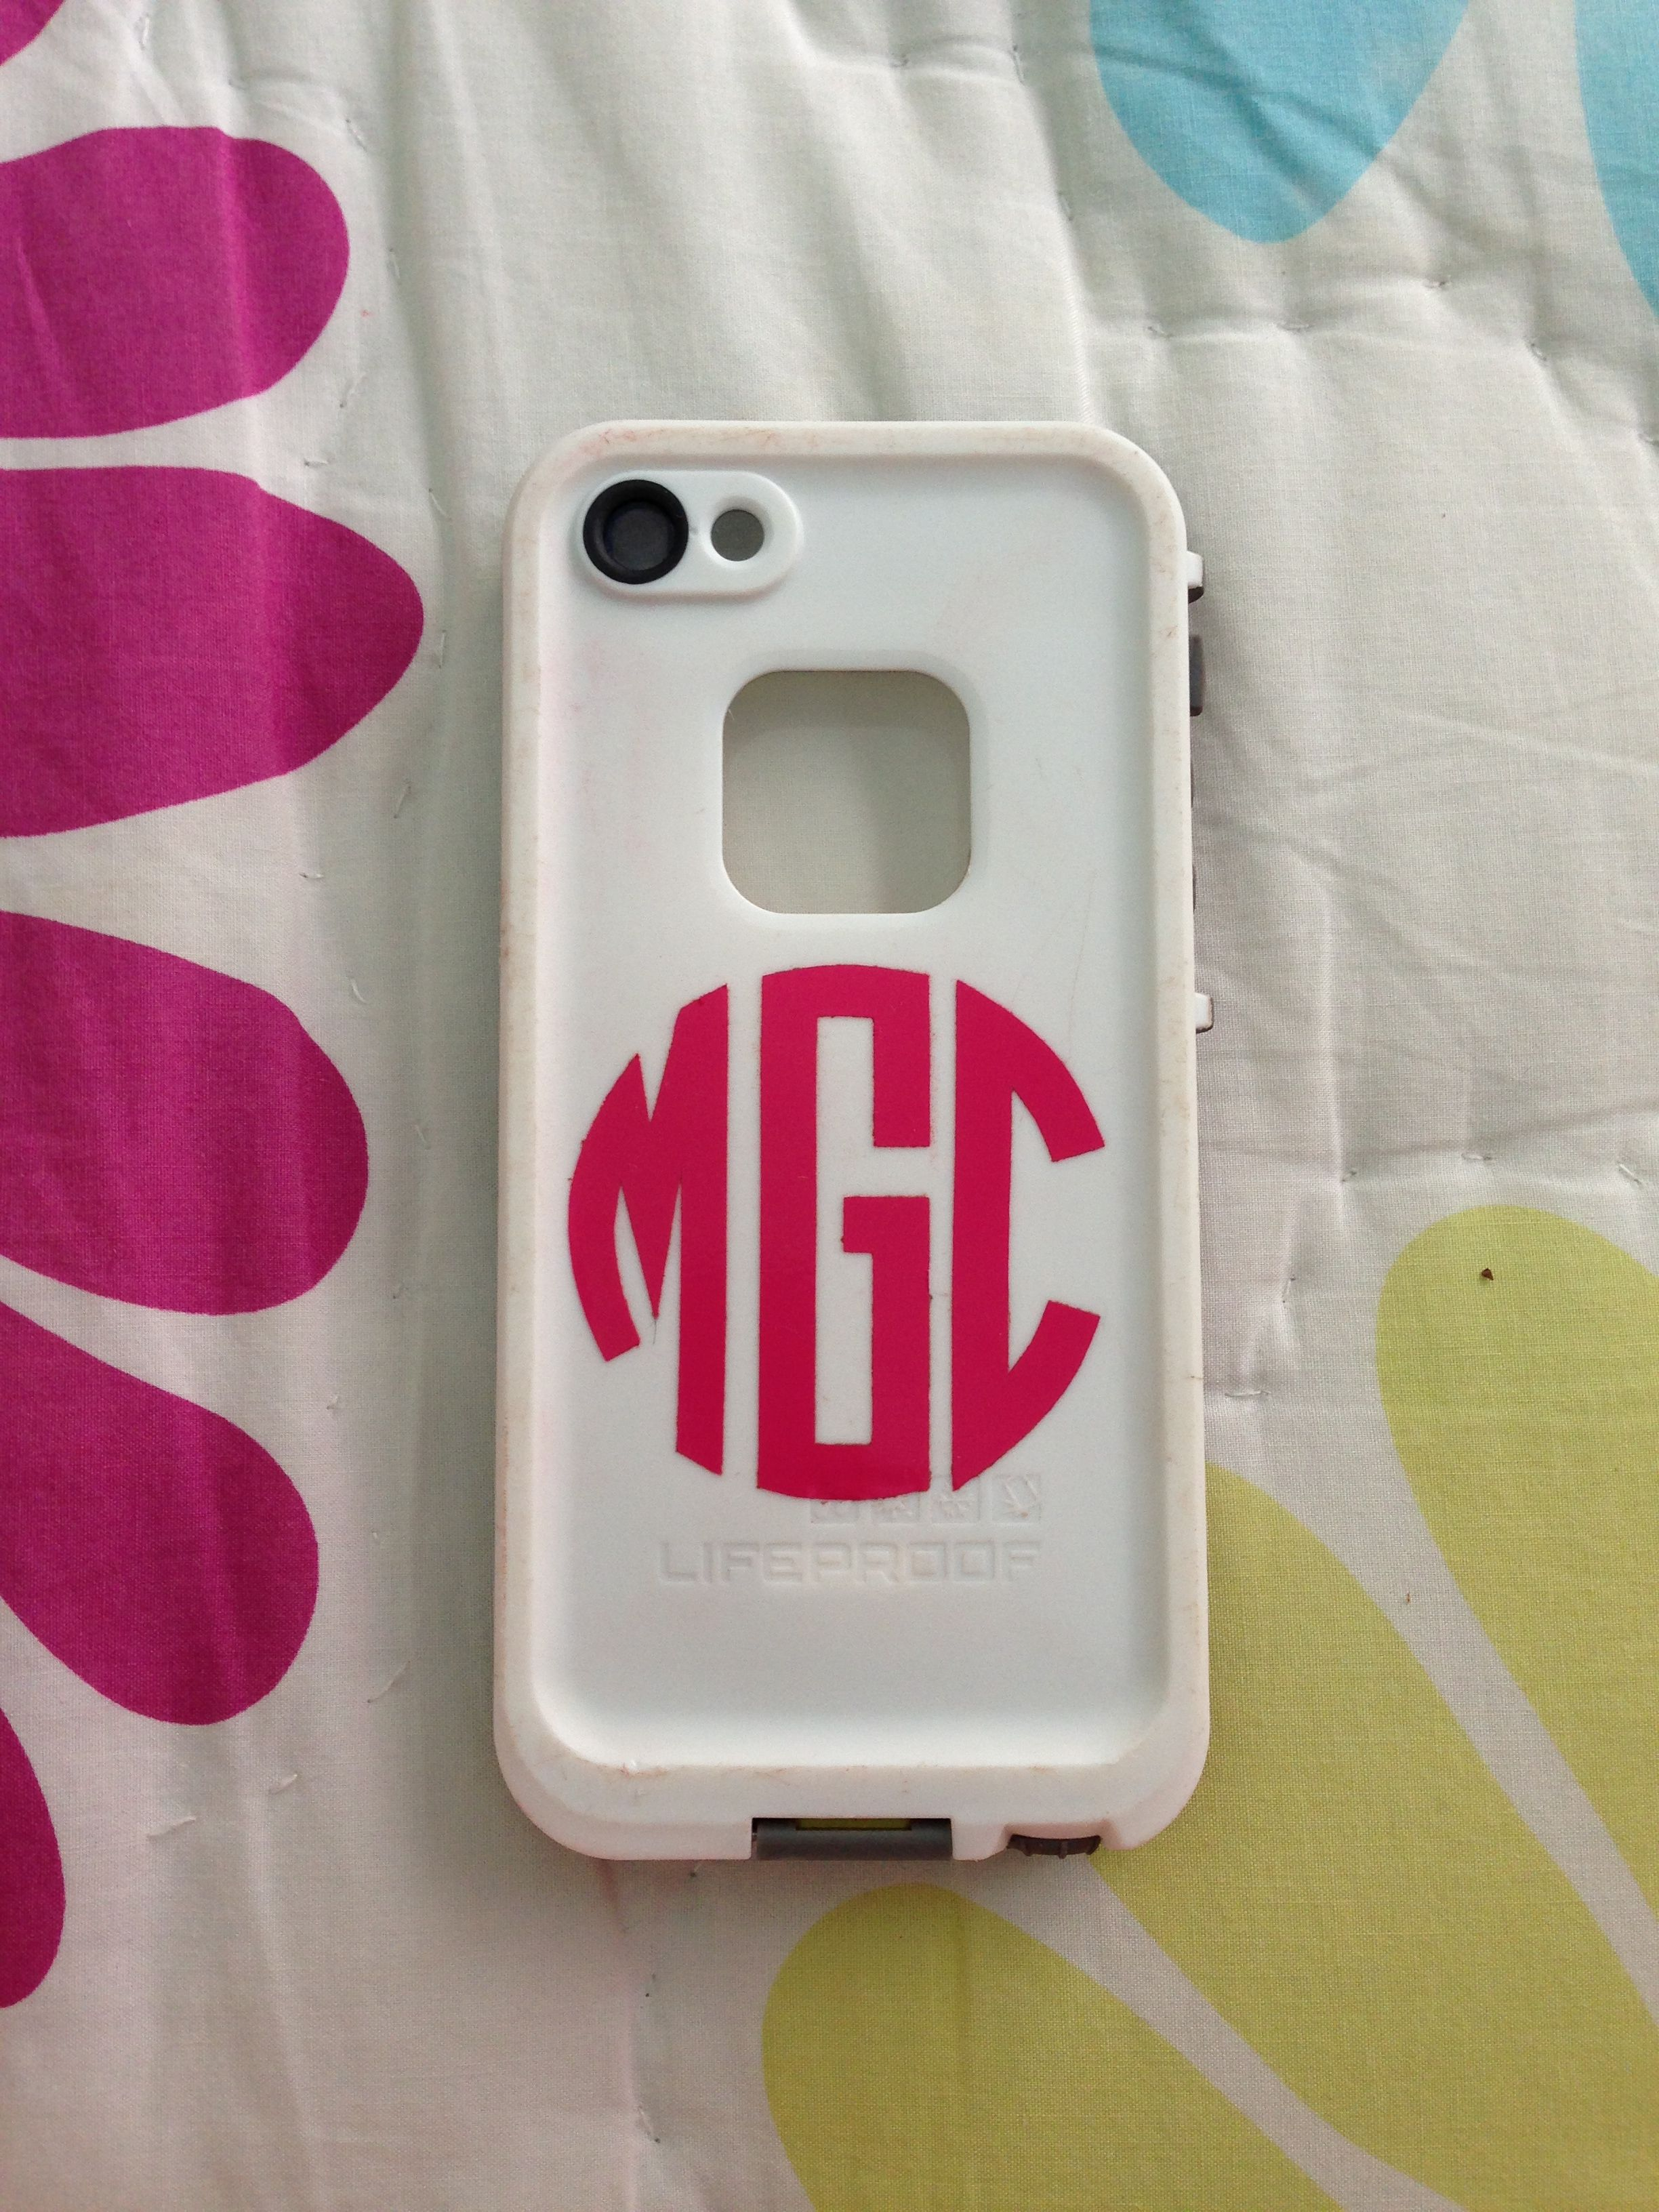 Lifeproof iphone 5 case with monogram sticker from etsy